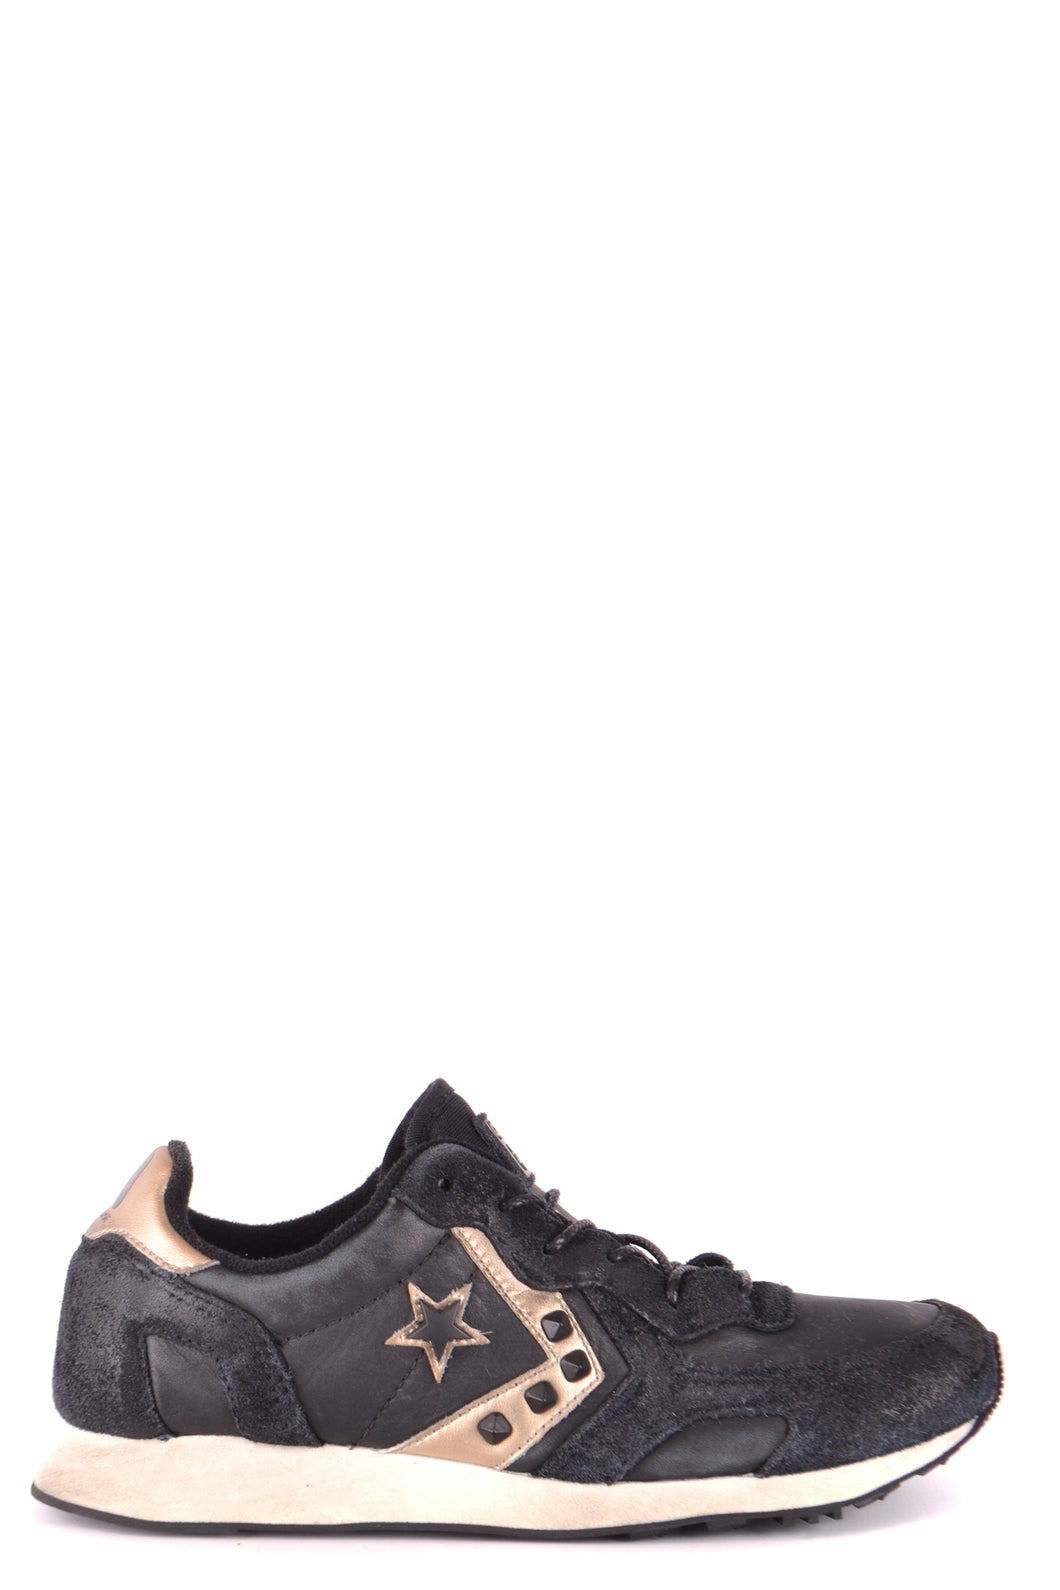 New Converse Women's Black Sneakers, Multi Sizes - Junkdrawercoolfinds.com